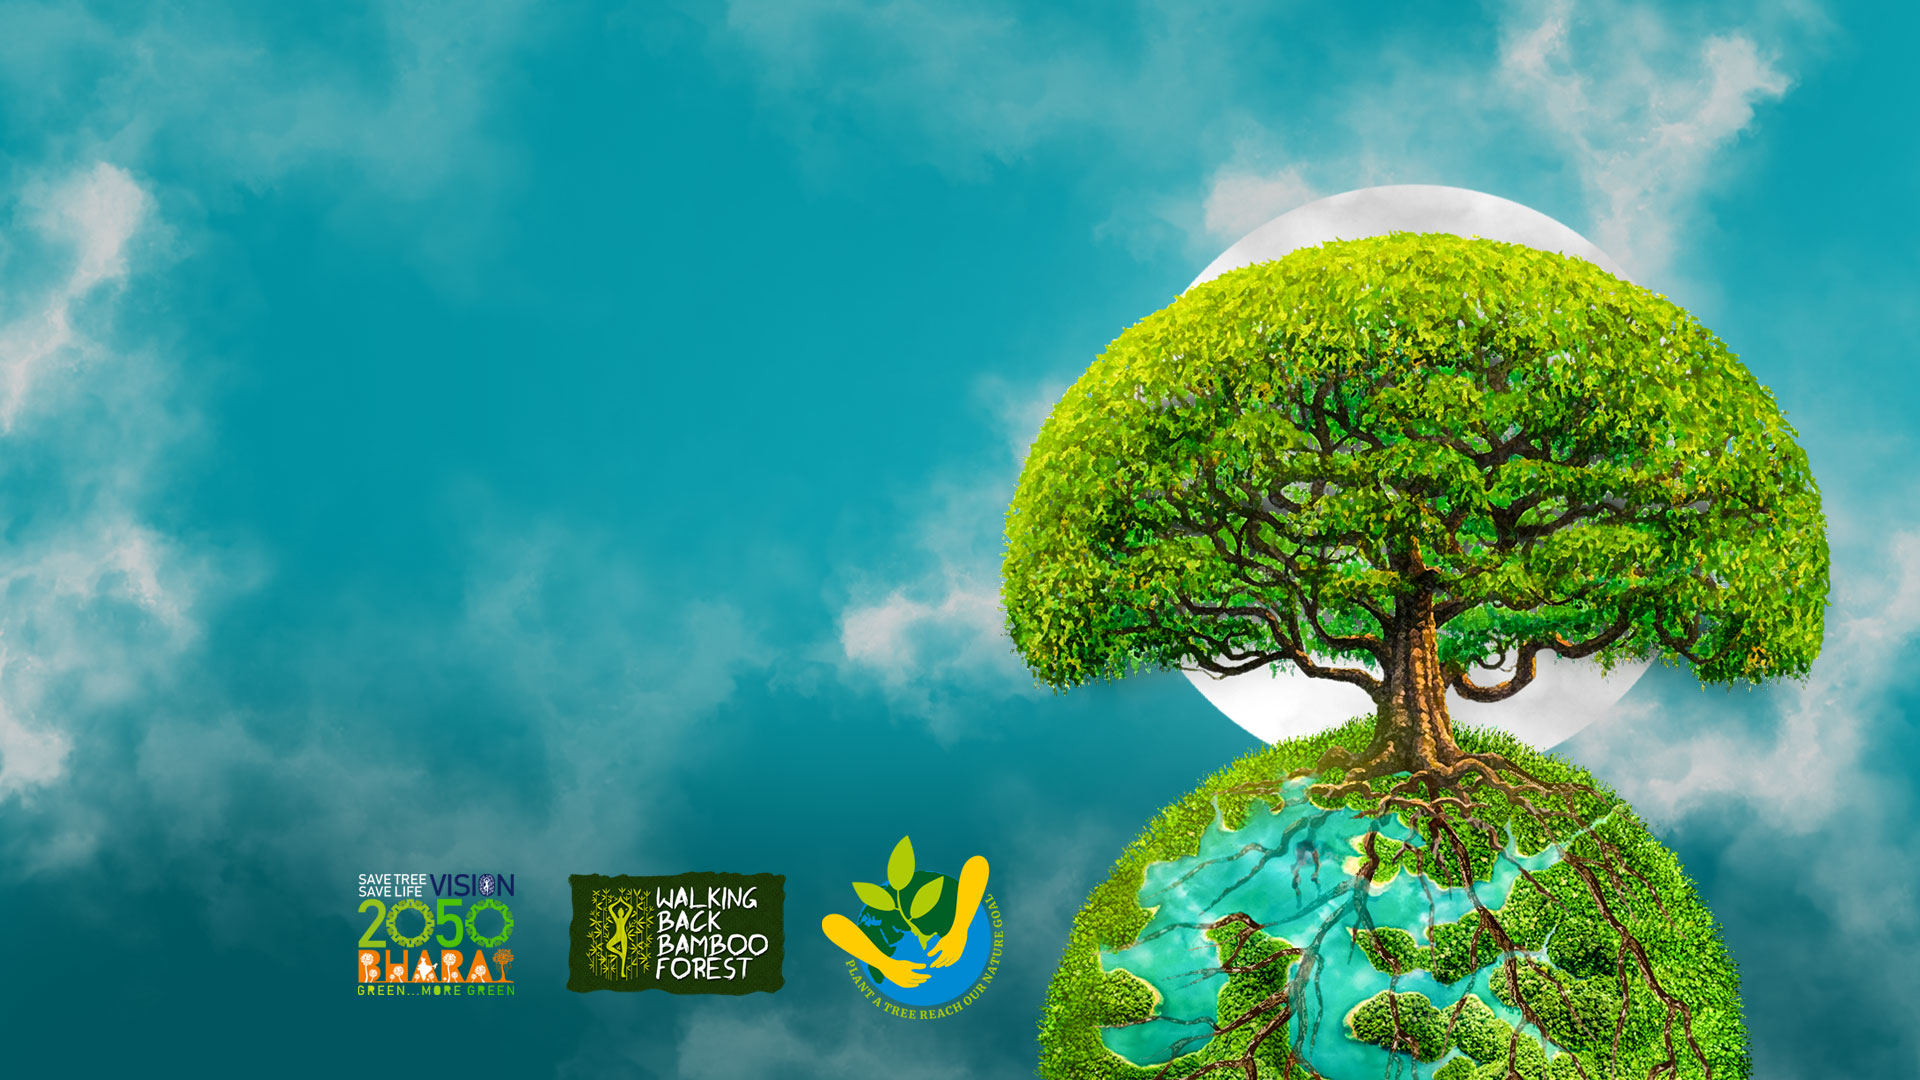 save-tree-save-life-society-banner-planting and caring 100 crore trees